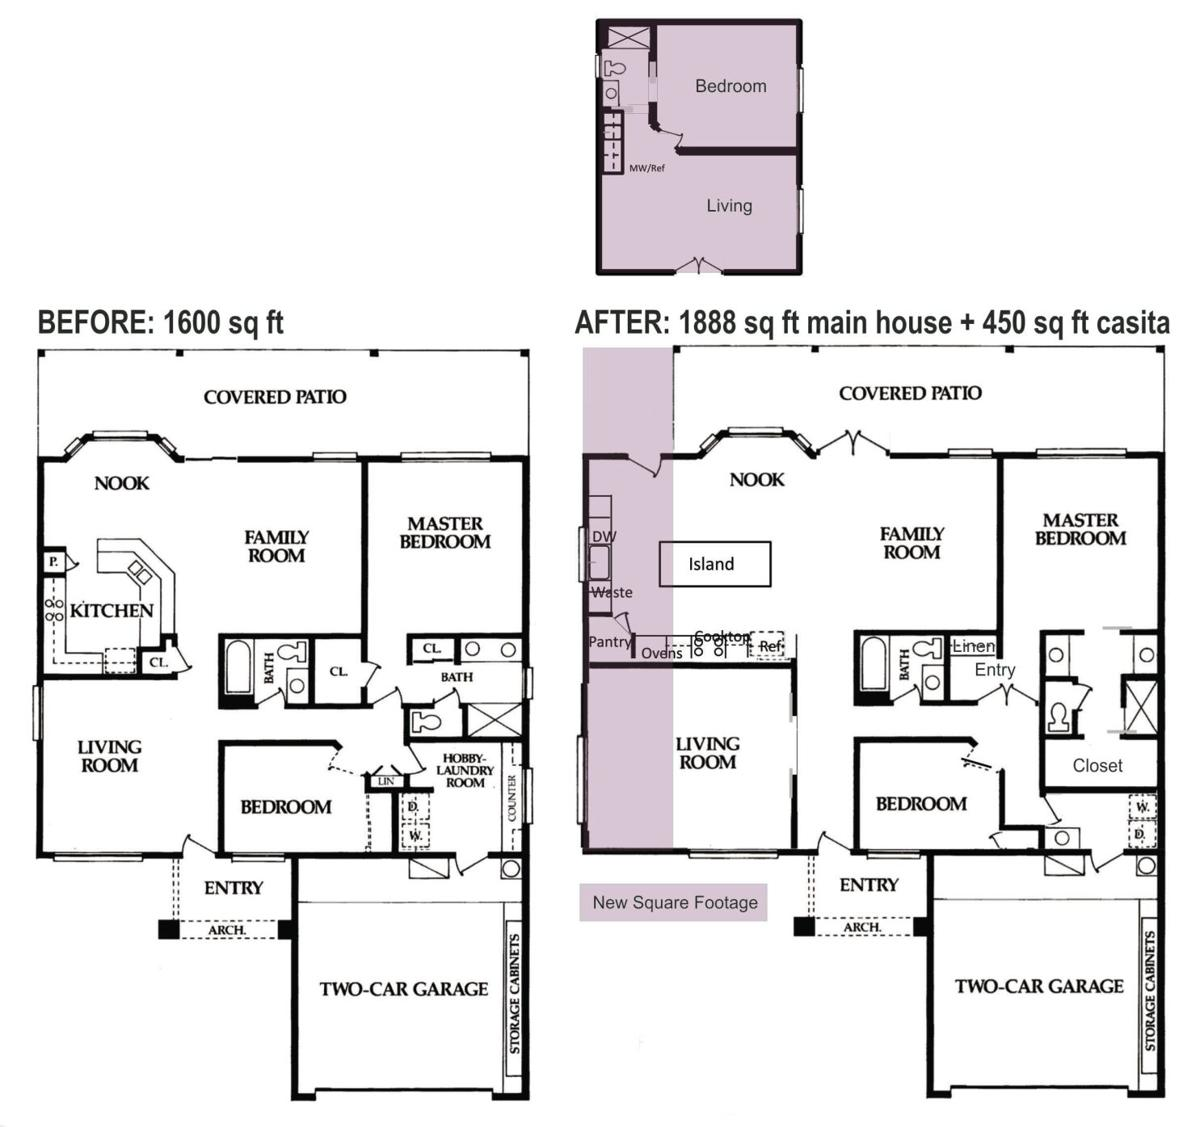 Floor-Plan-Before-and-After.jpg